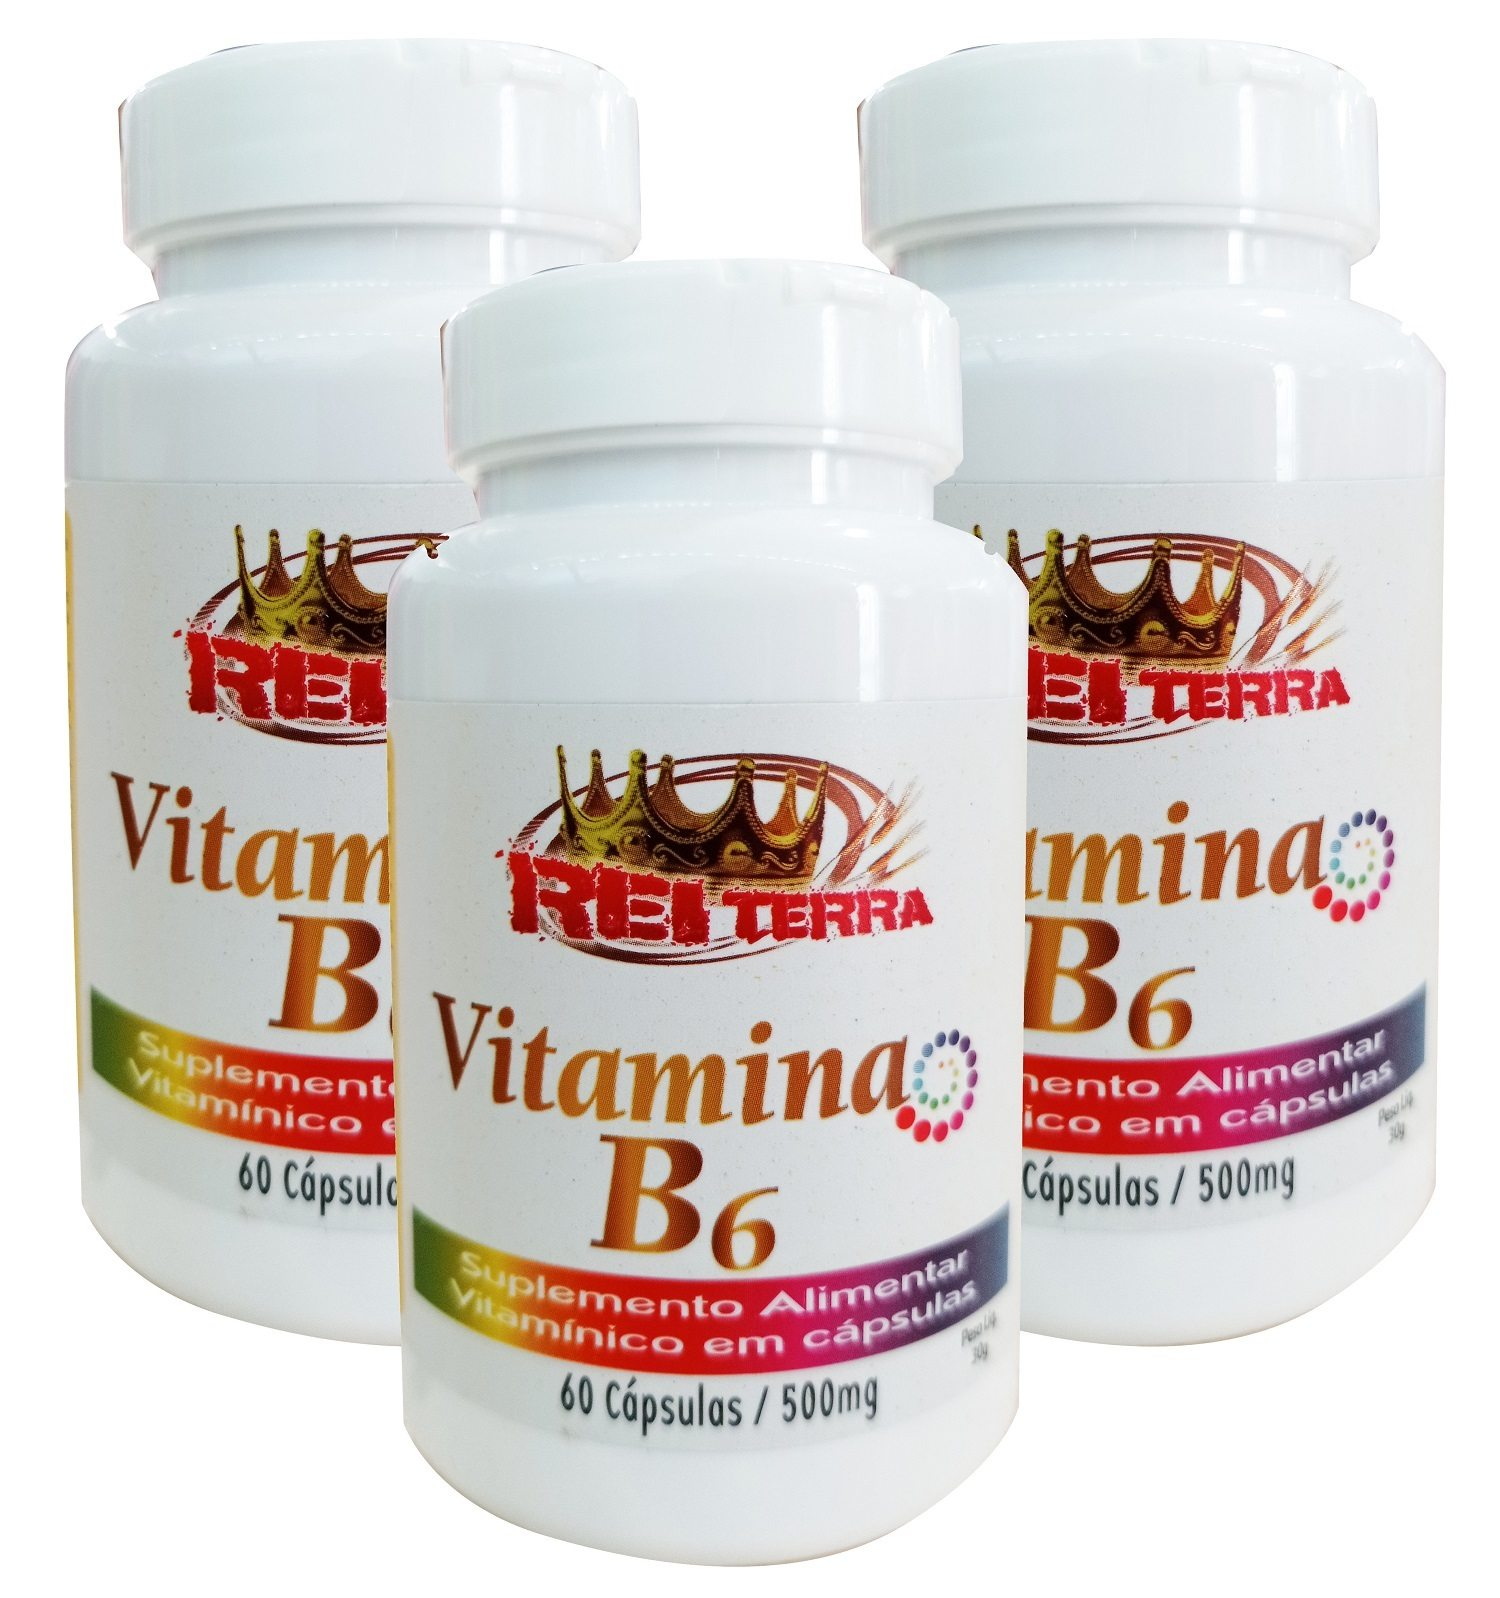 kit C/ 3 Un. Vitamina B6 180 Cápsulas 500 mg